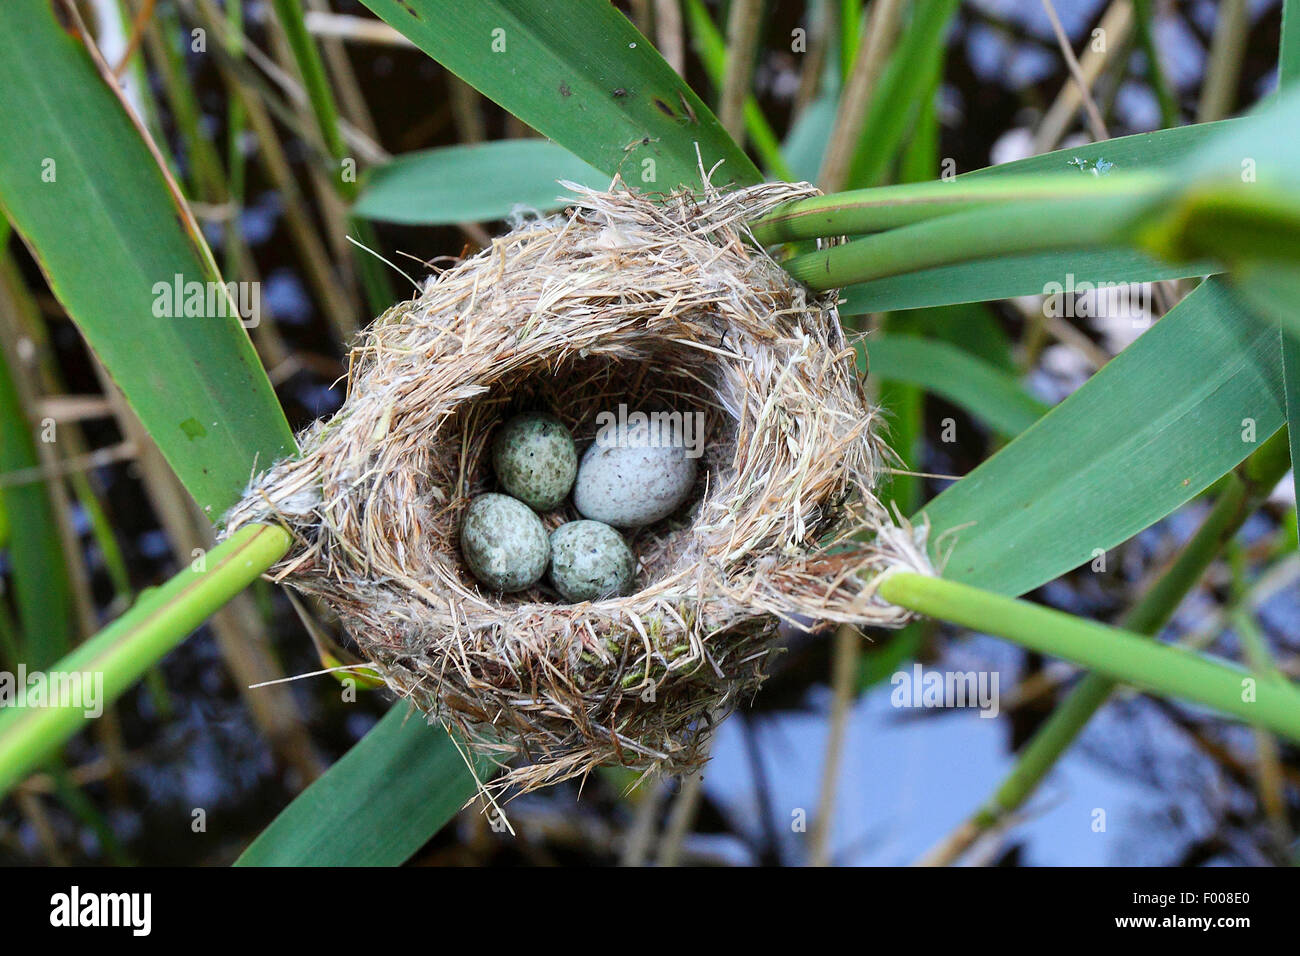 Eurasian cuckoo (Cuculus canorus), eggs in the nest, cuckoo put his slightly larger egg in the nest to the eggs - Stock Image